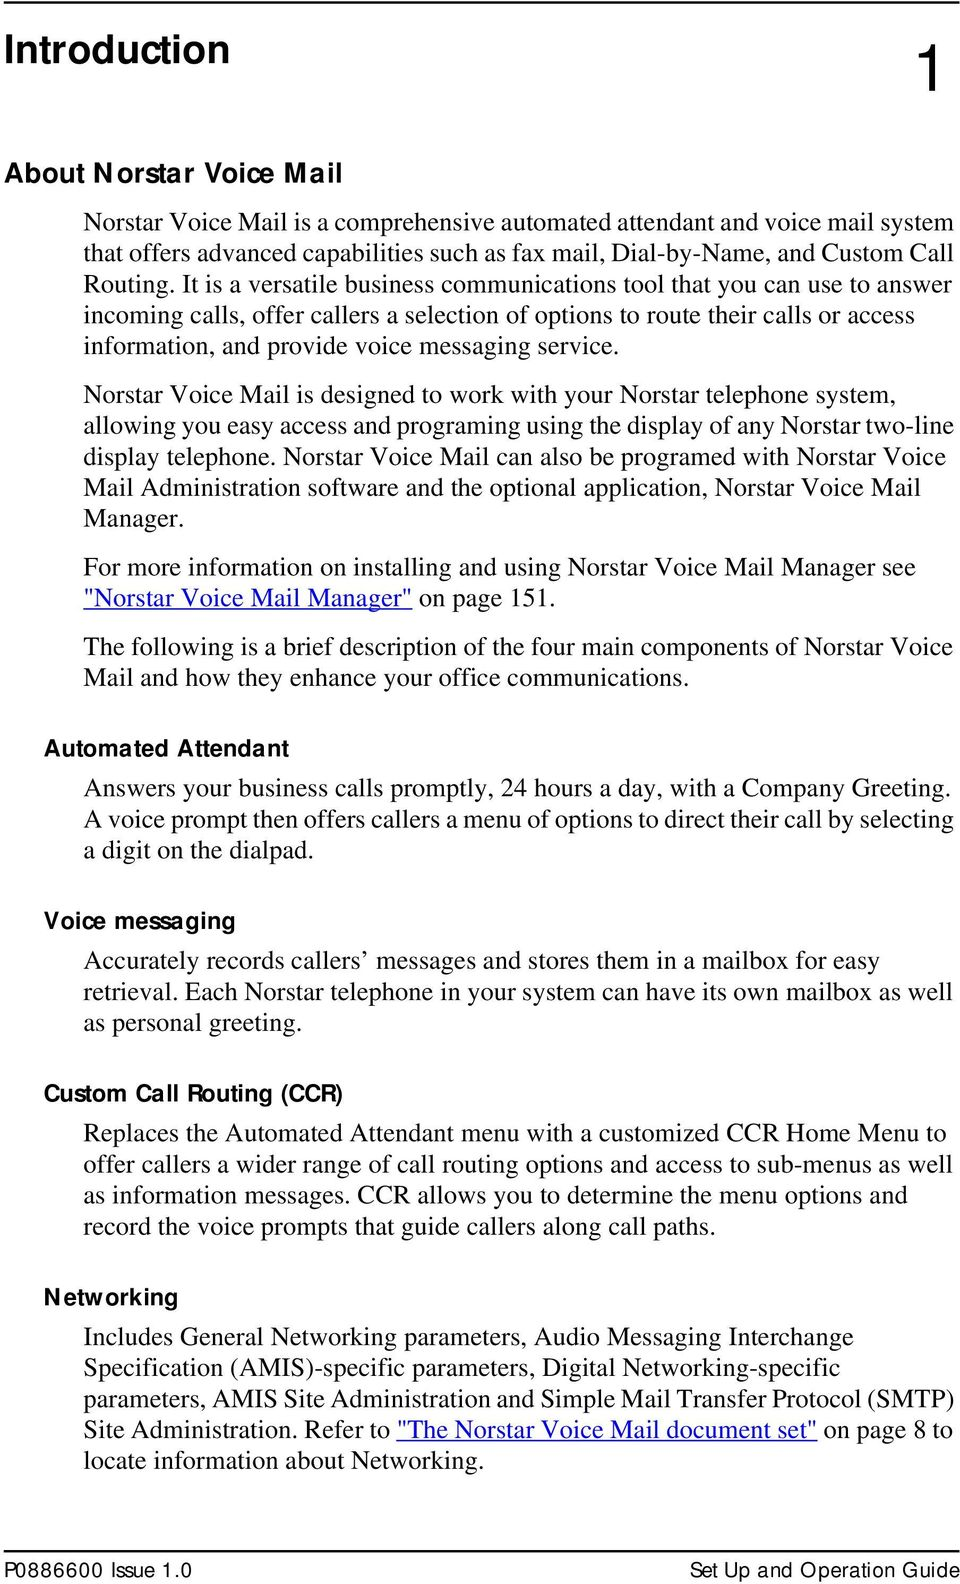 norstar voice mail 4 0 set up and operation guide pdf rh docplayer net nortel callpilot voicemail user guide nortel bcm50 voicemail user guide